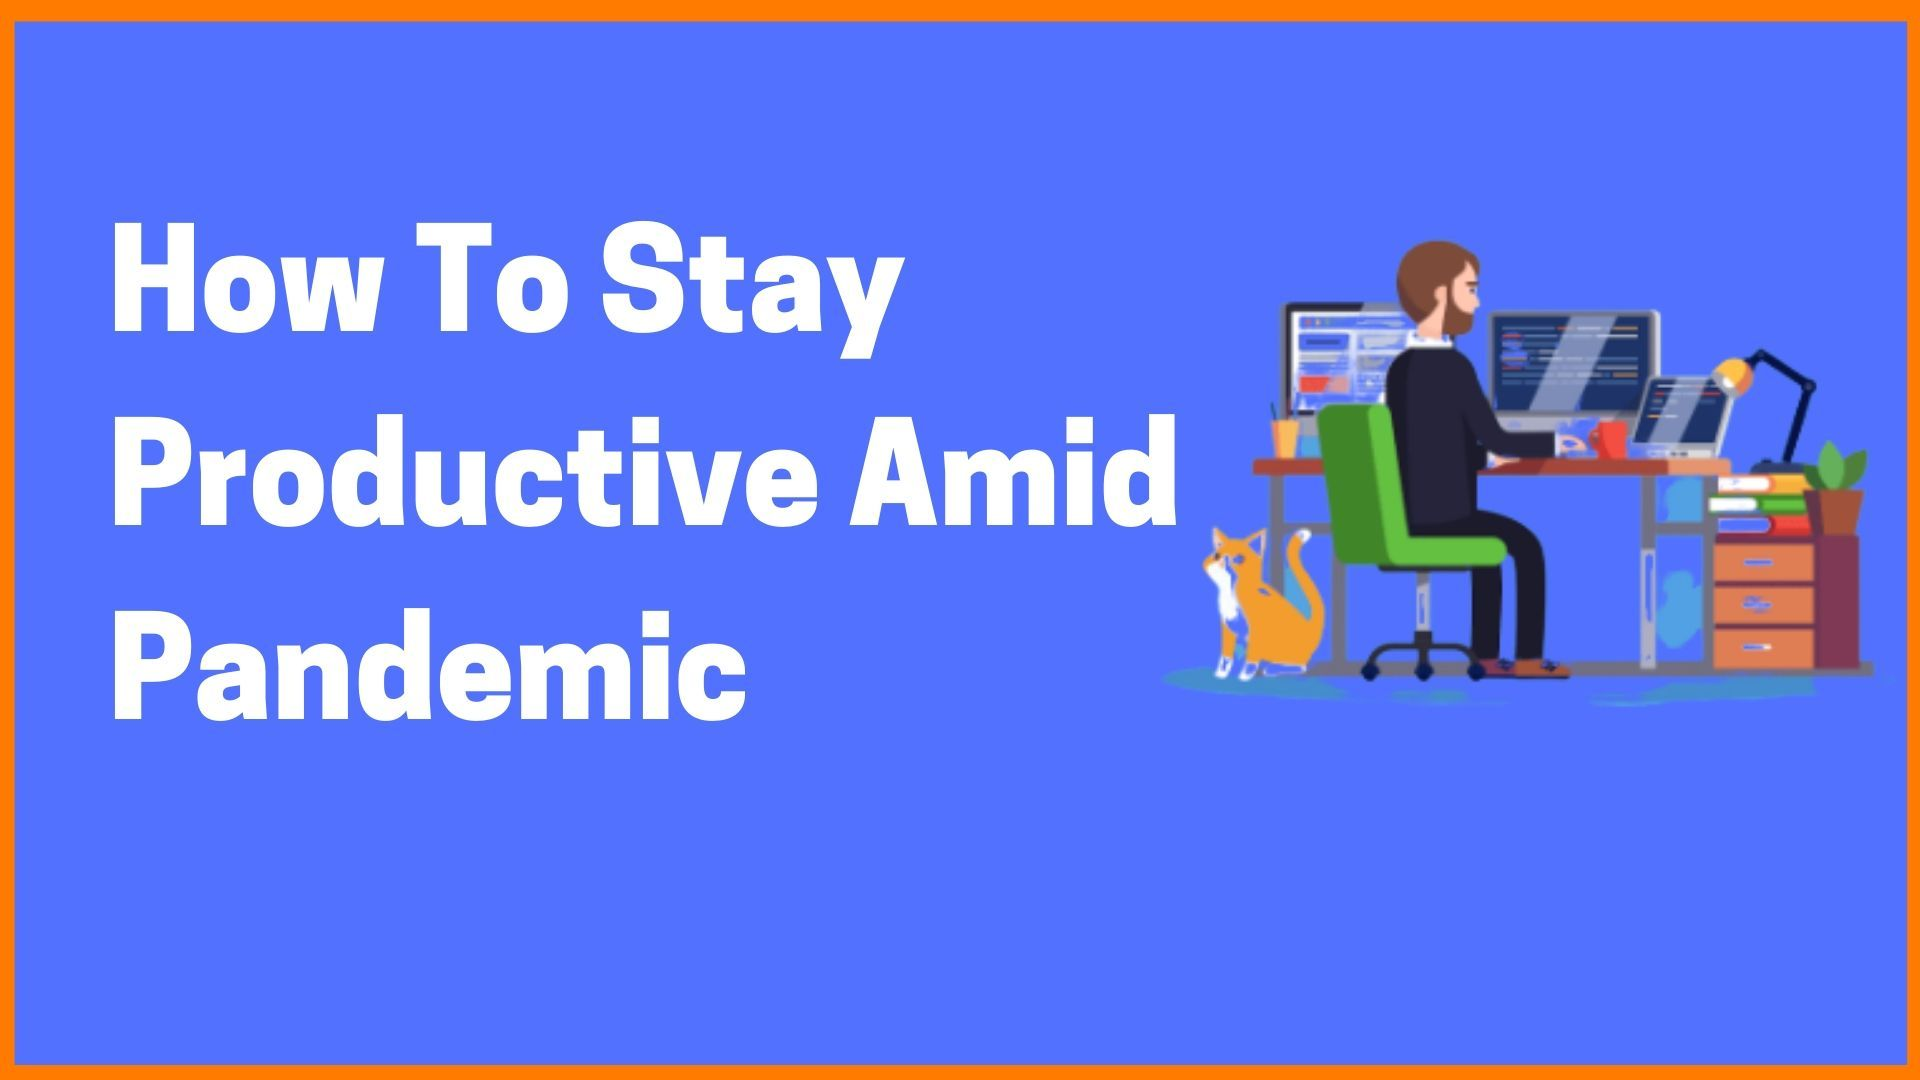 How To Stay Productive Amid Pandemic